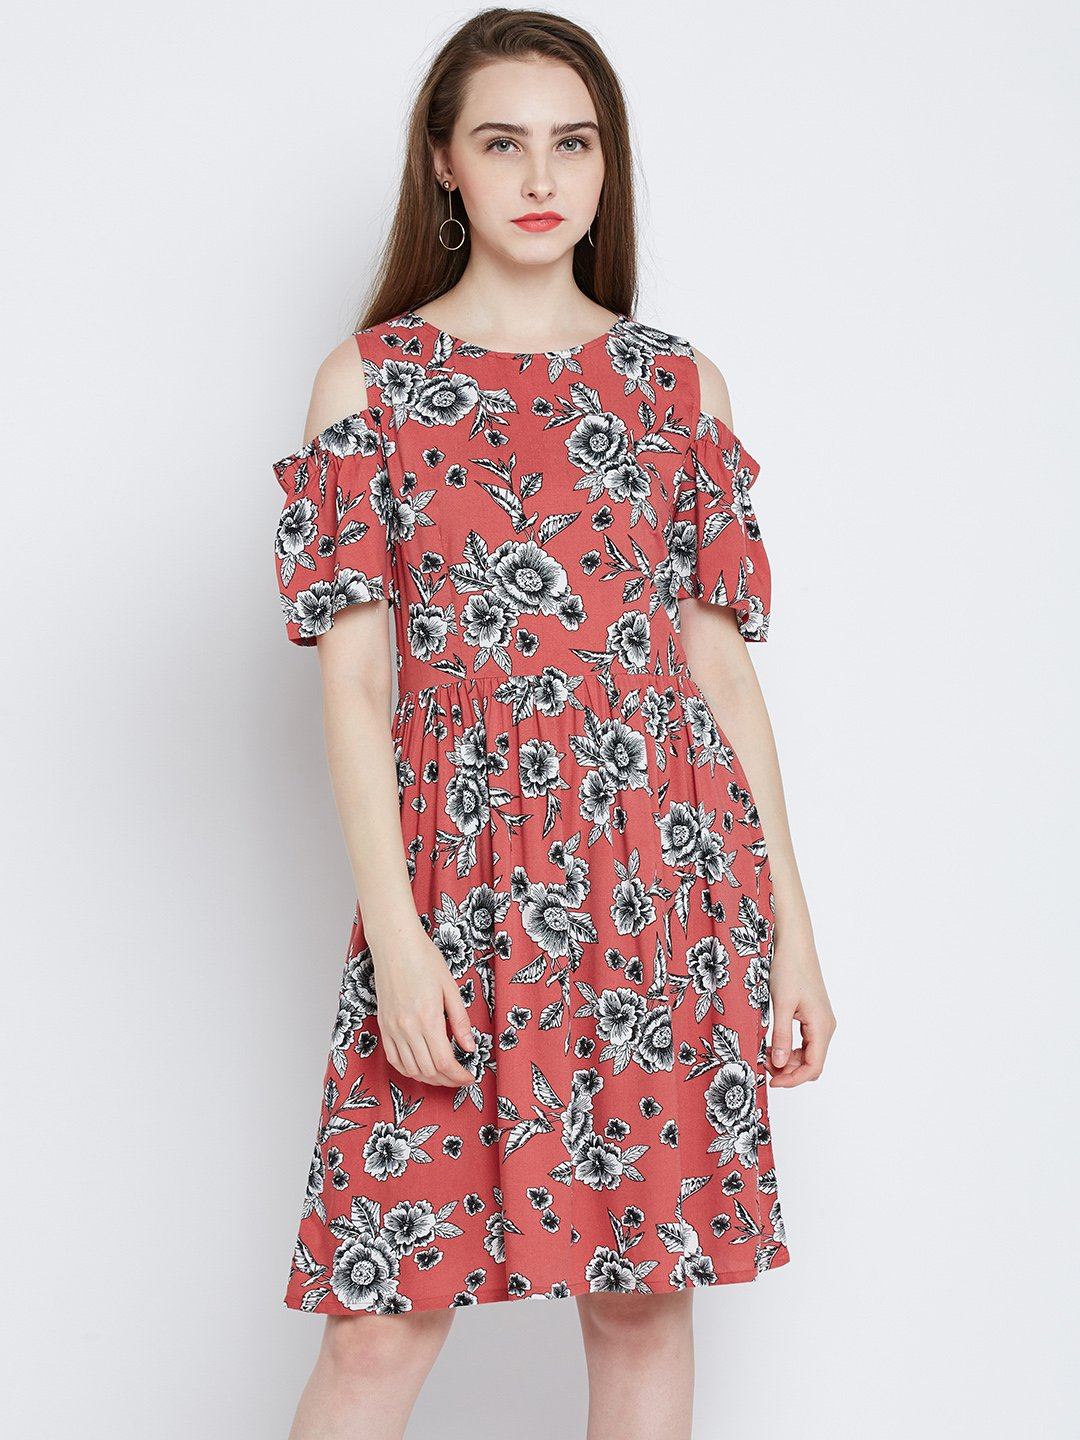 Marie Claire Women Rust Red Floral Print Fit & Flare Dress